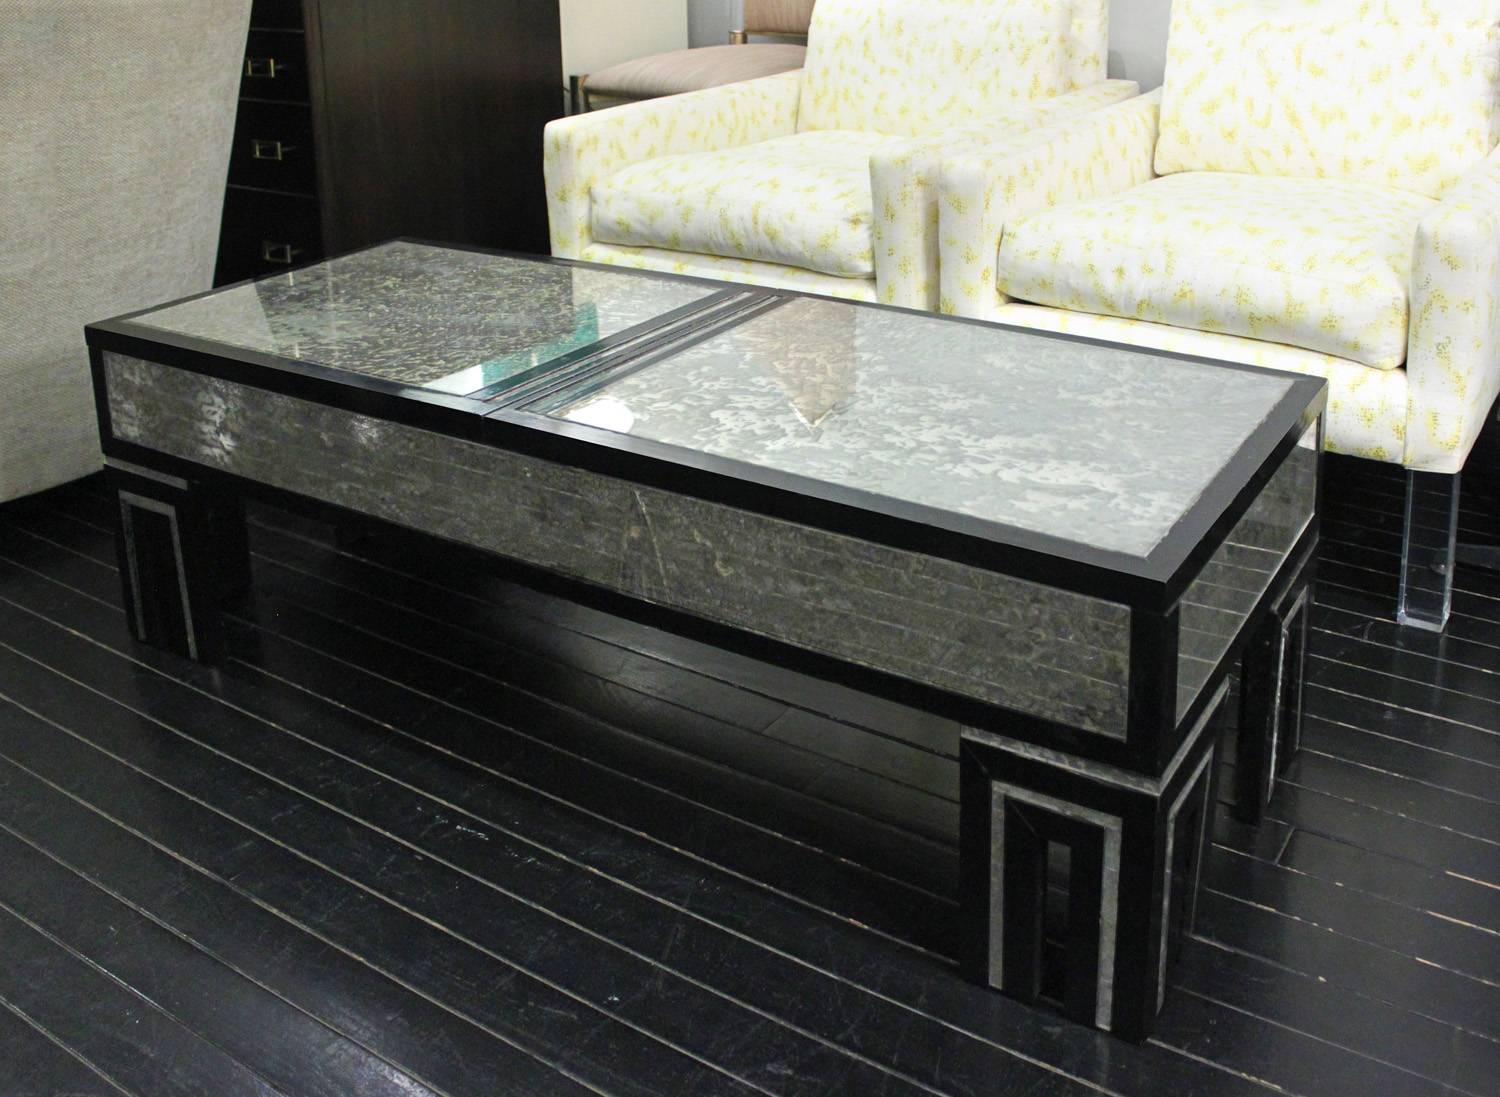 Mont 75 sliding top mottled glass coffeetable401 detail7 hires.jpg